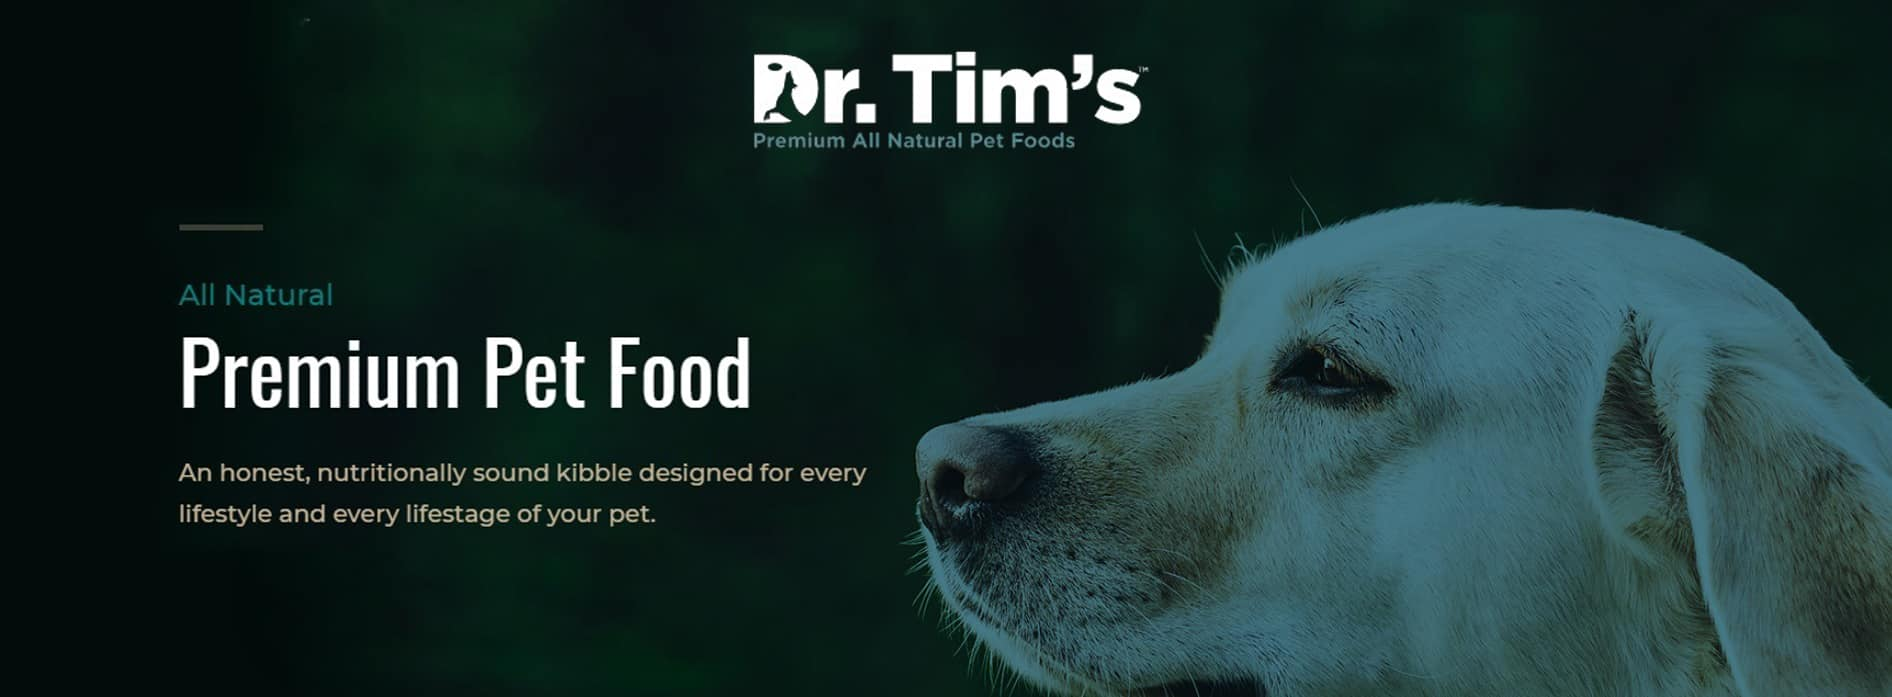 dr. tim's dog food review